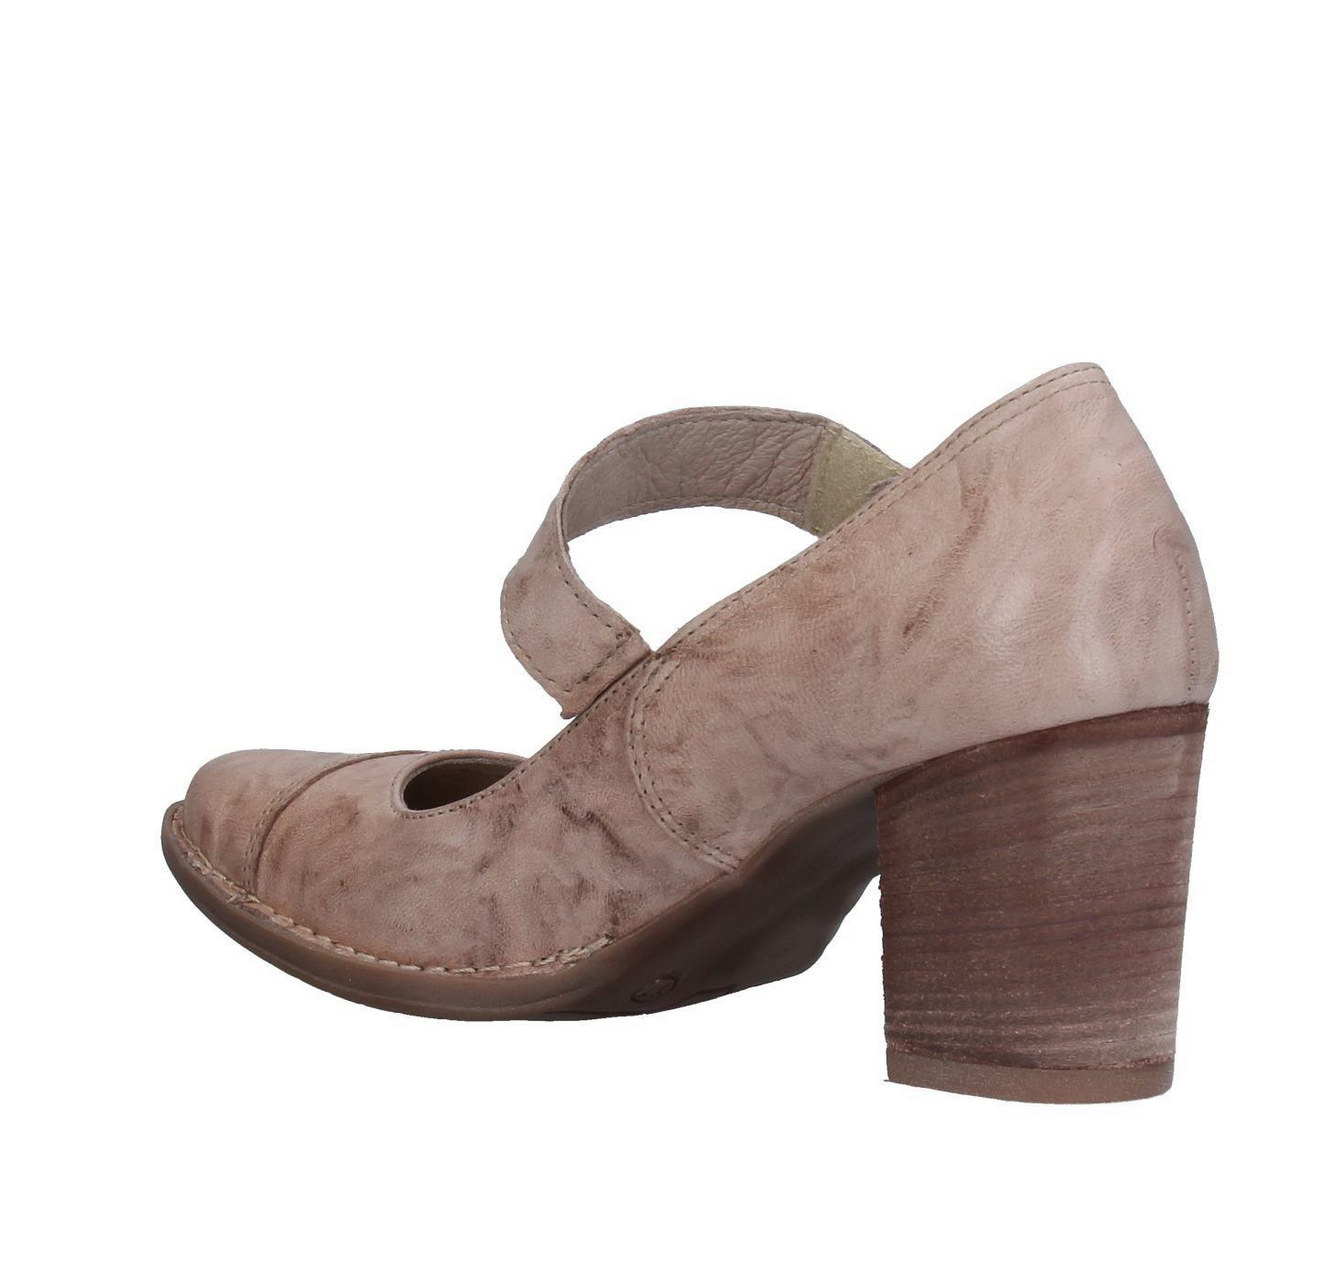 KHRIO COURTS COURTS COURTS PUMPS schuhe Größe 39 EU 8.5 US LEATHER SAND NIOB  114 1556a6